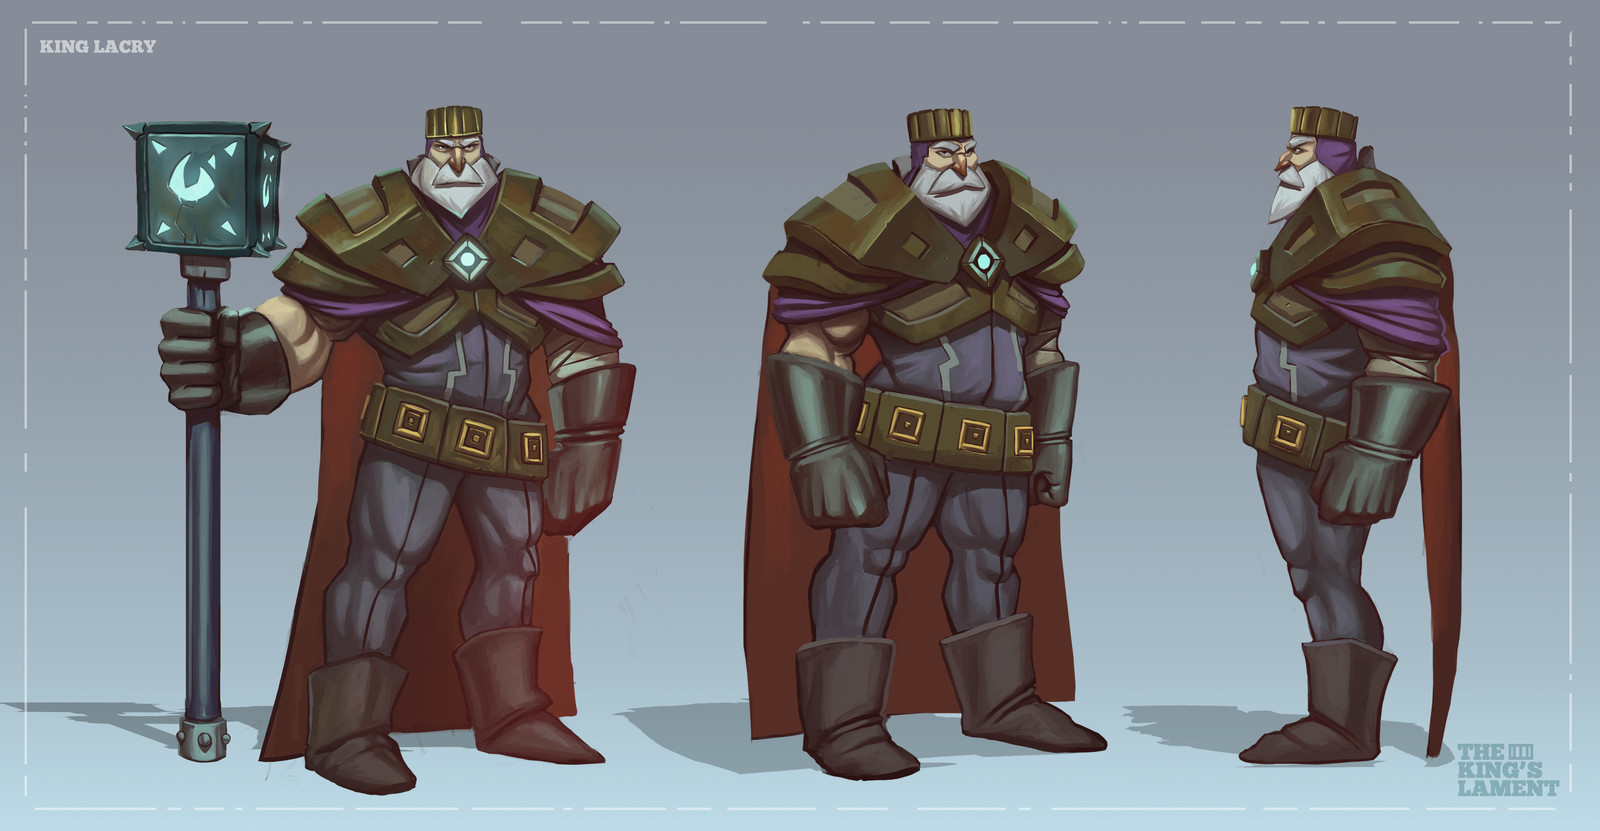 KING LACRY - CHARACTER DESIGN